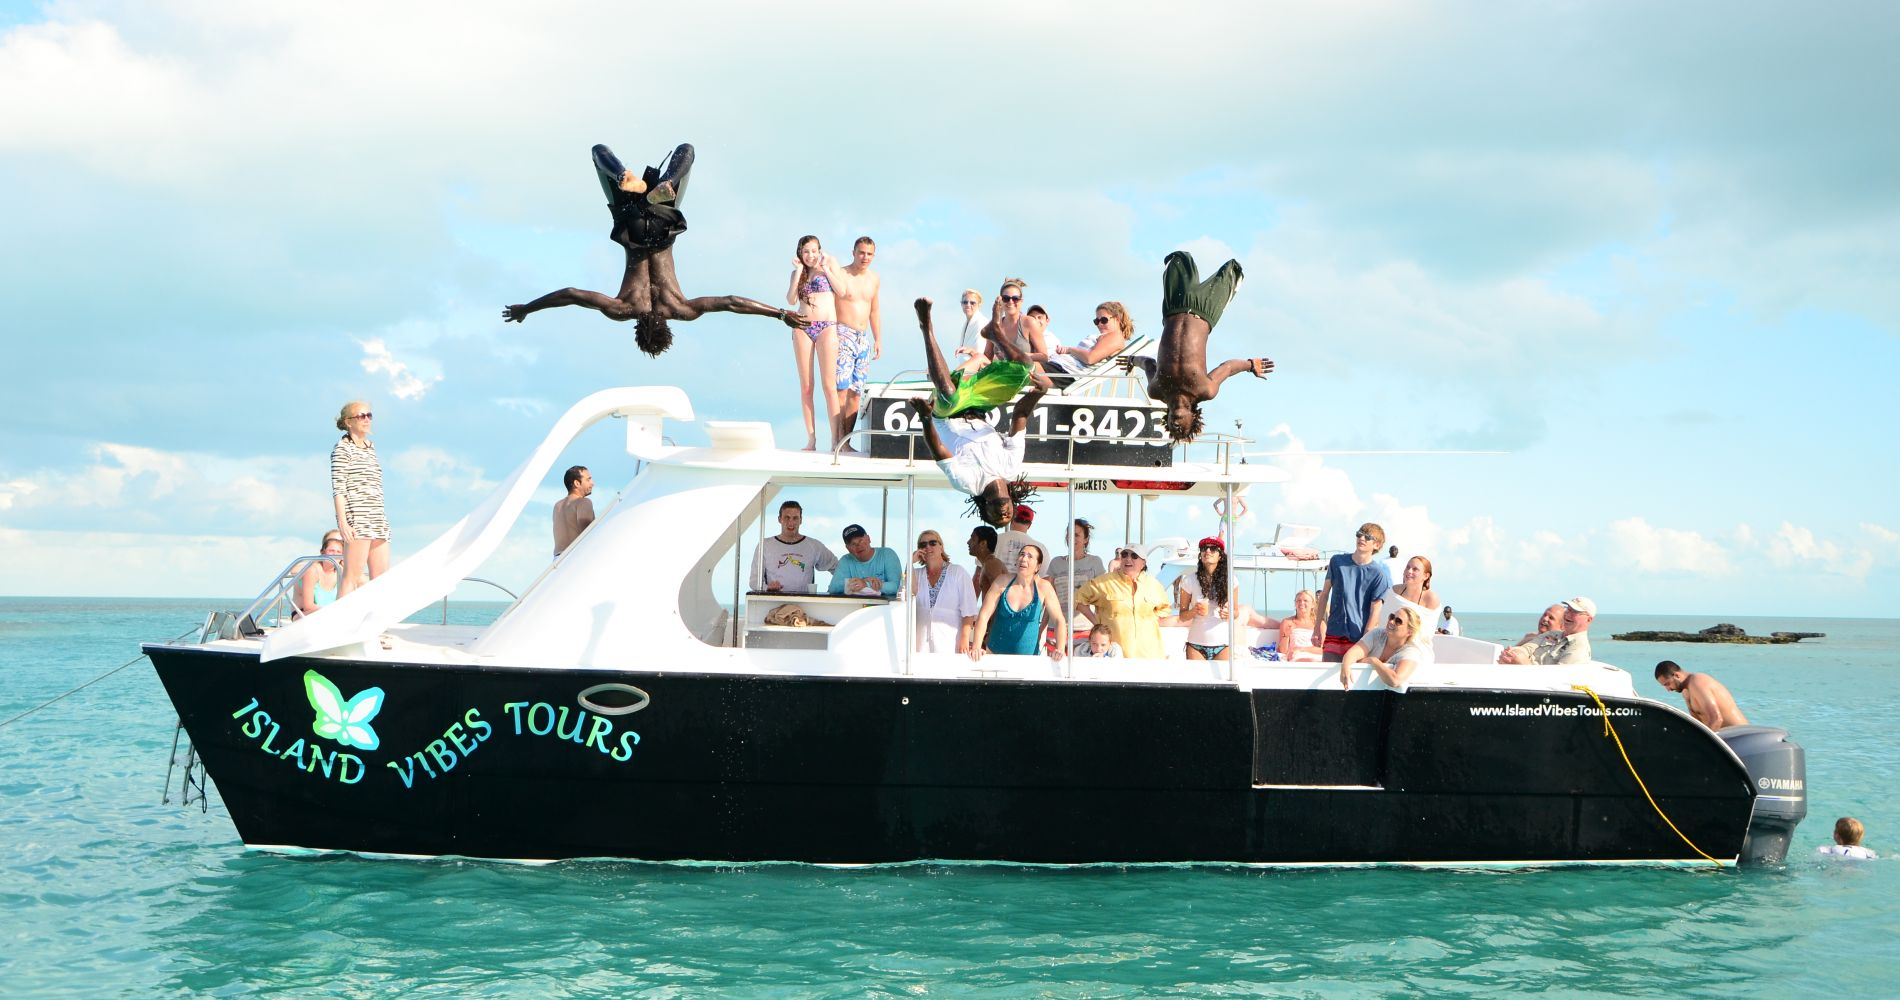 Half-Day Snorkeling Adventure Turks and Caicos Tinggly Experience Gift